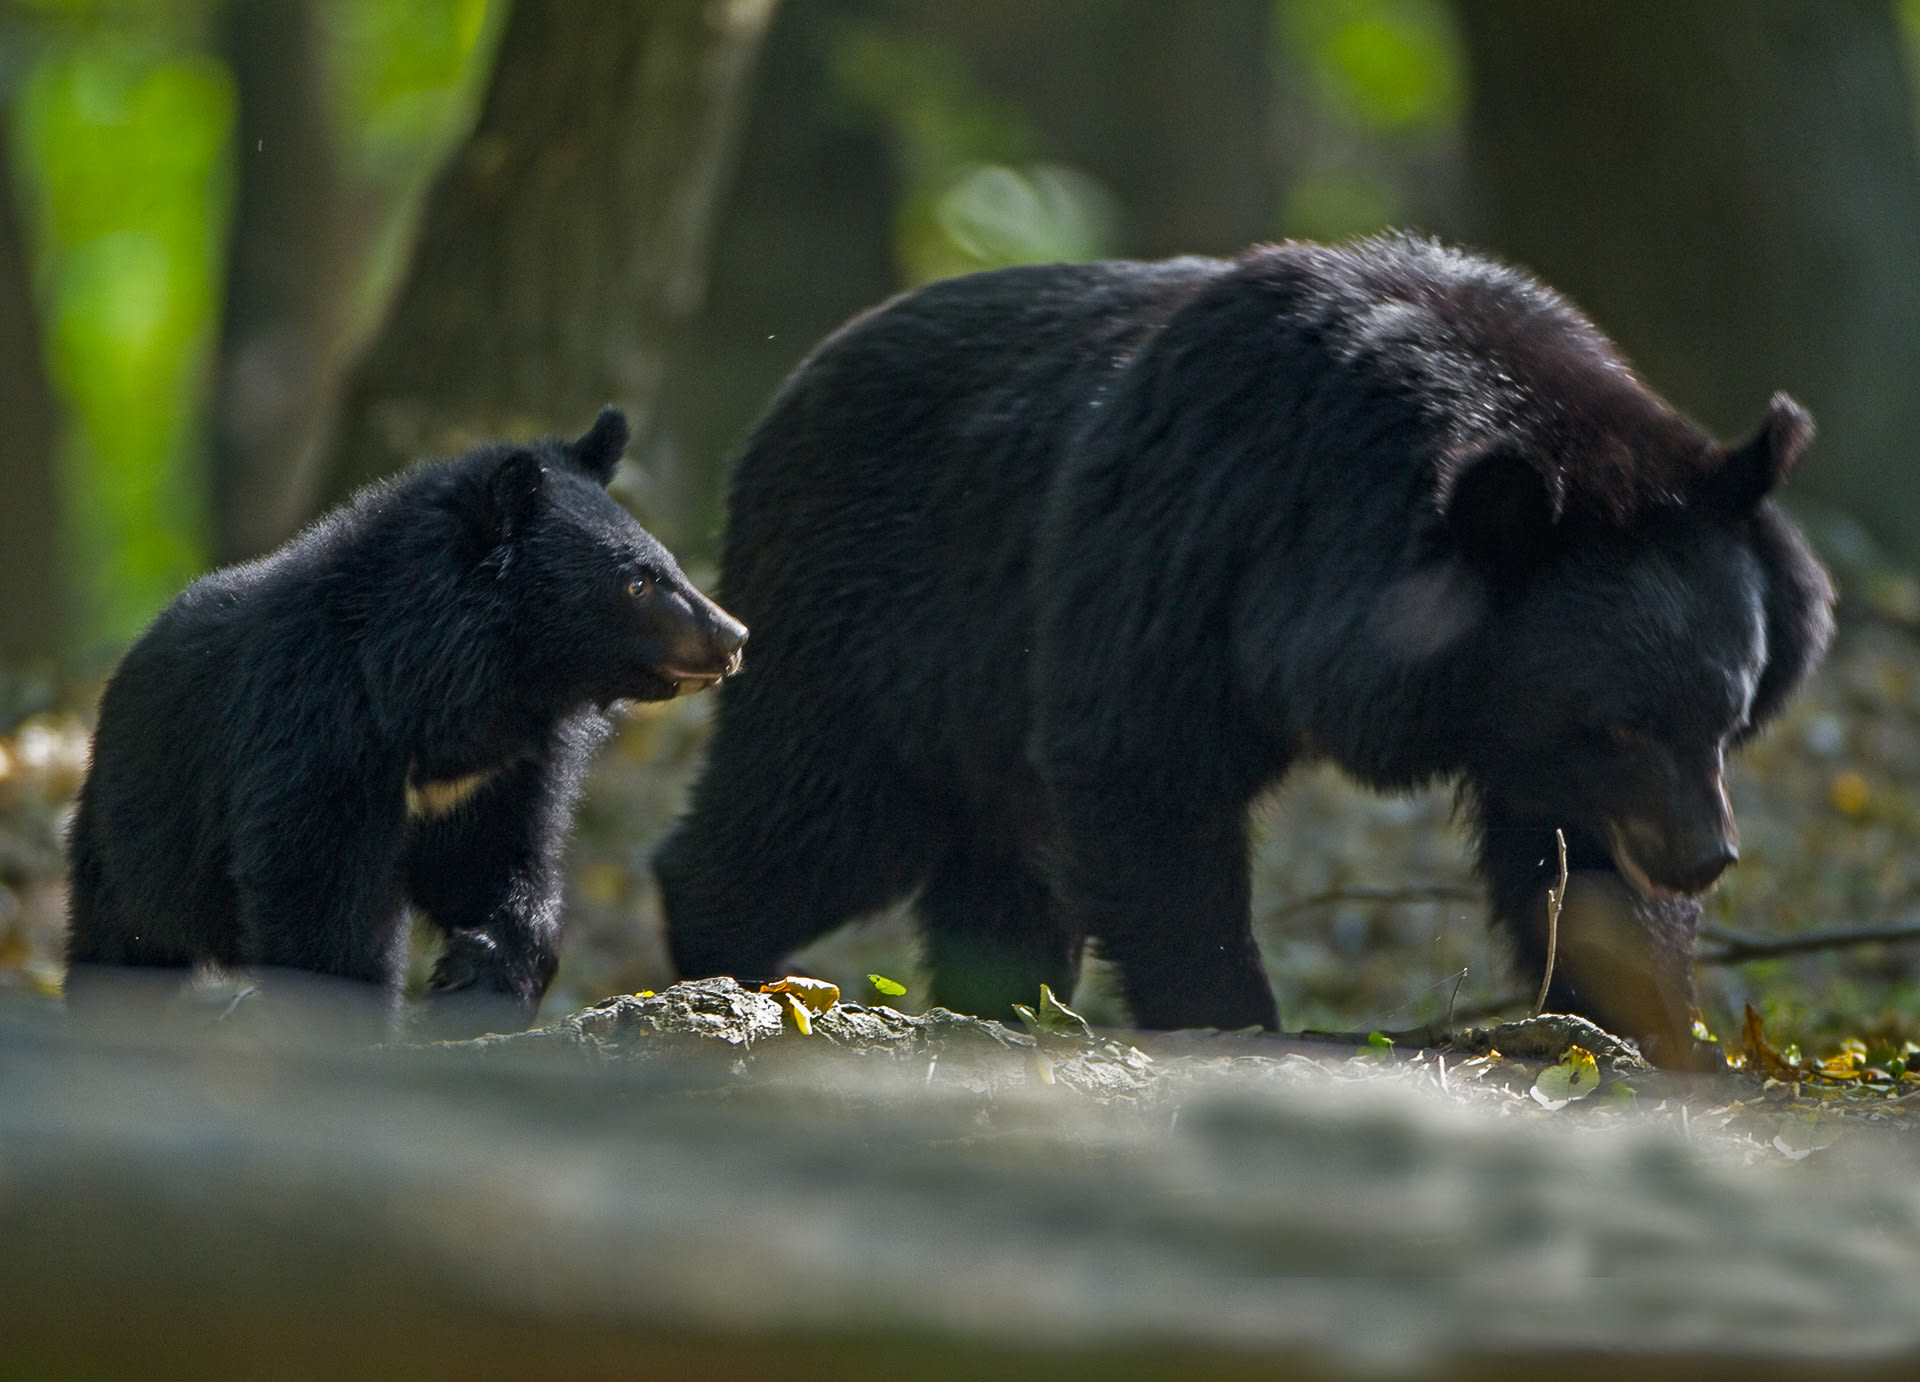 When the cubs are socialised into the ursine way of life and it is time for the mother to mate again, the family unit is broken up through the process of dispersion. Eventually, males will travel outside their mother's home range to establish their own territories and rank. Females, on the other hand, occupy a part of the mother's home range.